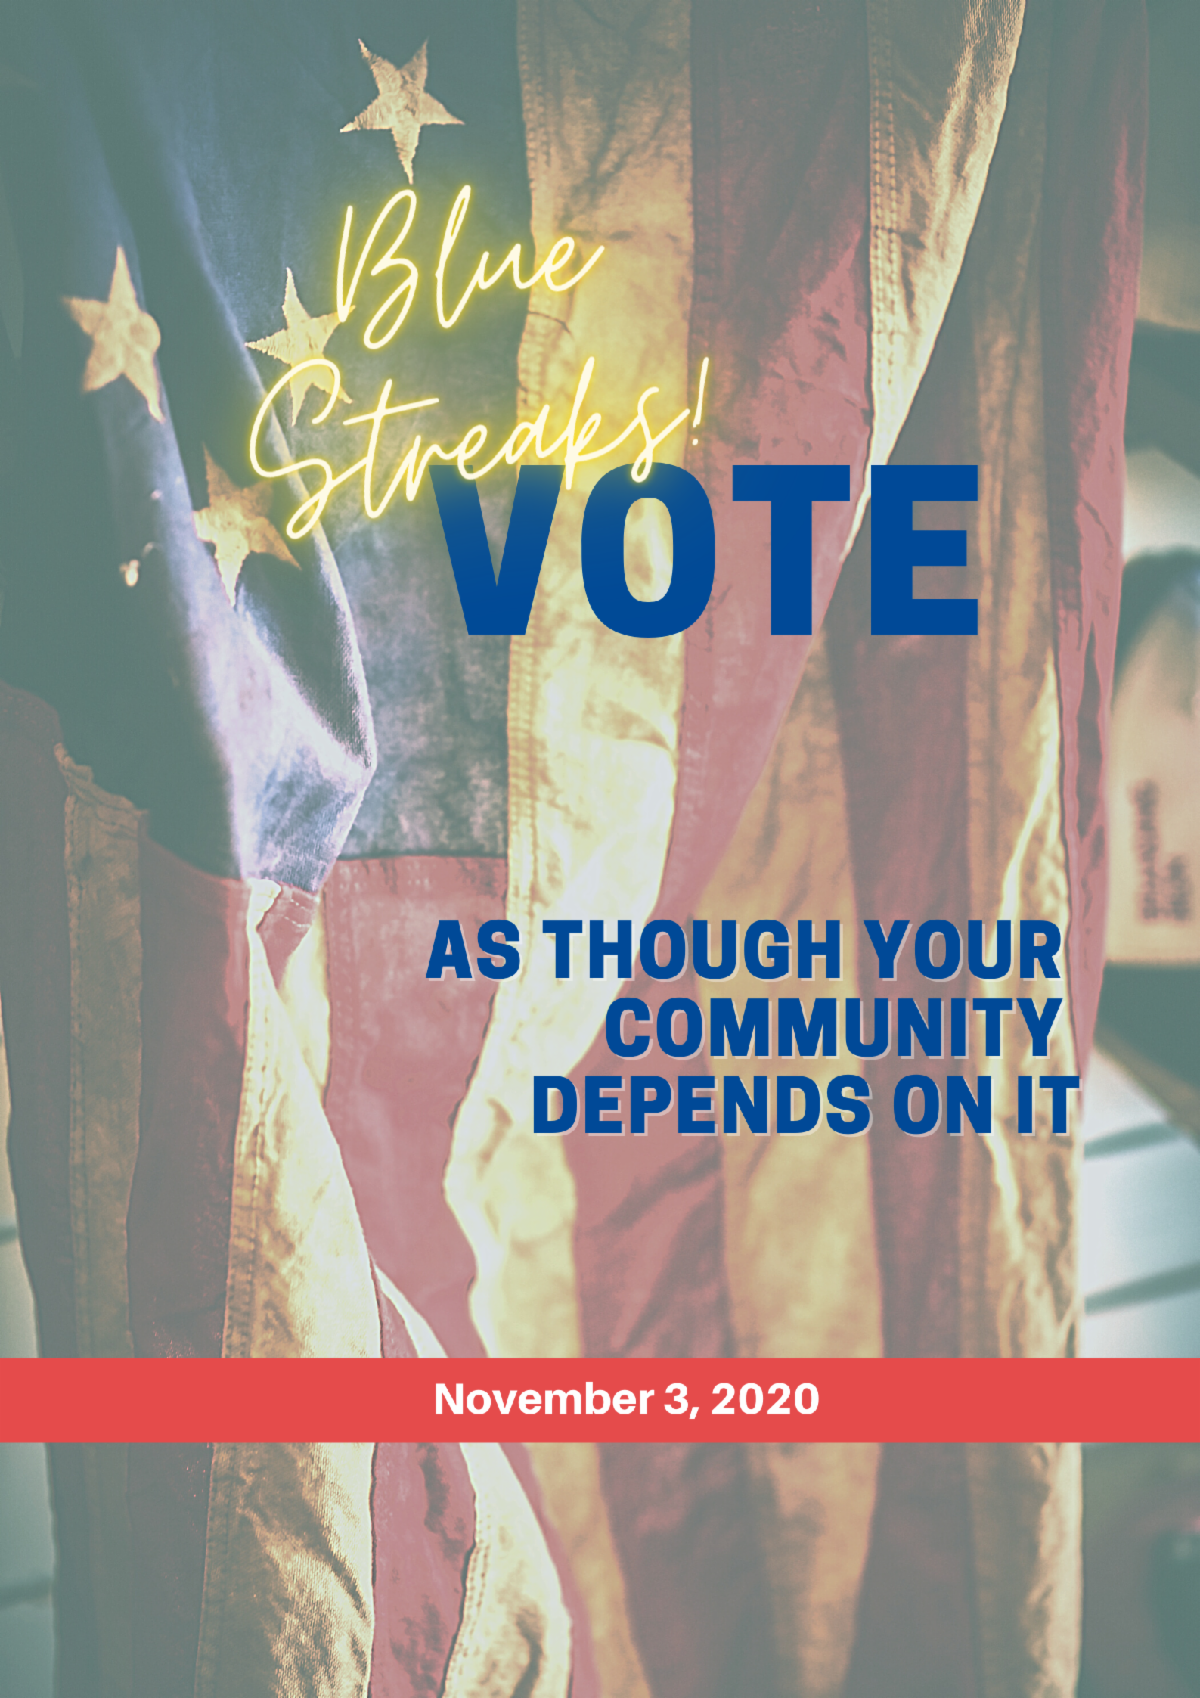 Blue Streaks - vote as though your community depends on it - November 3 2020